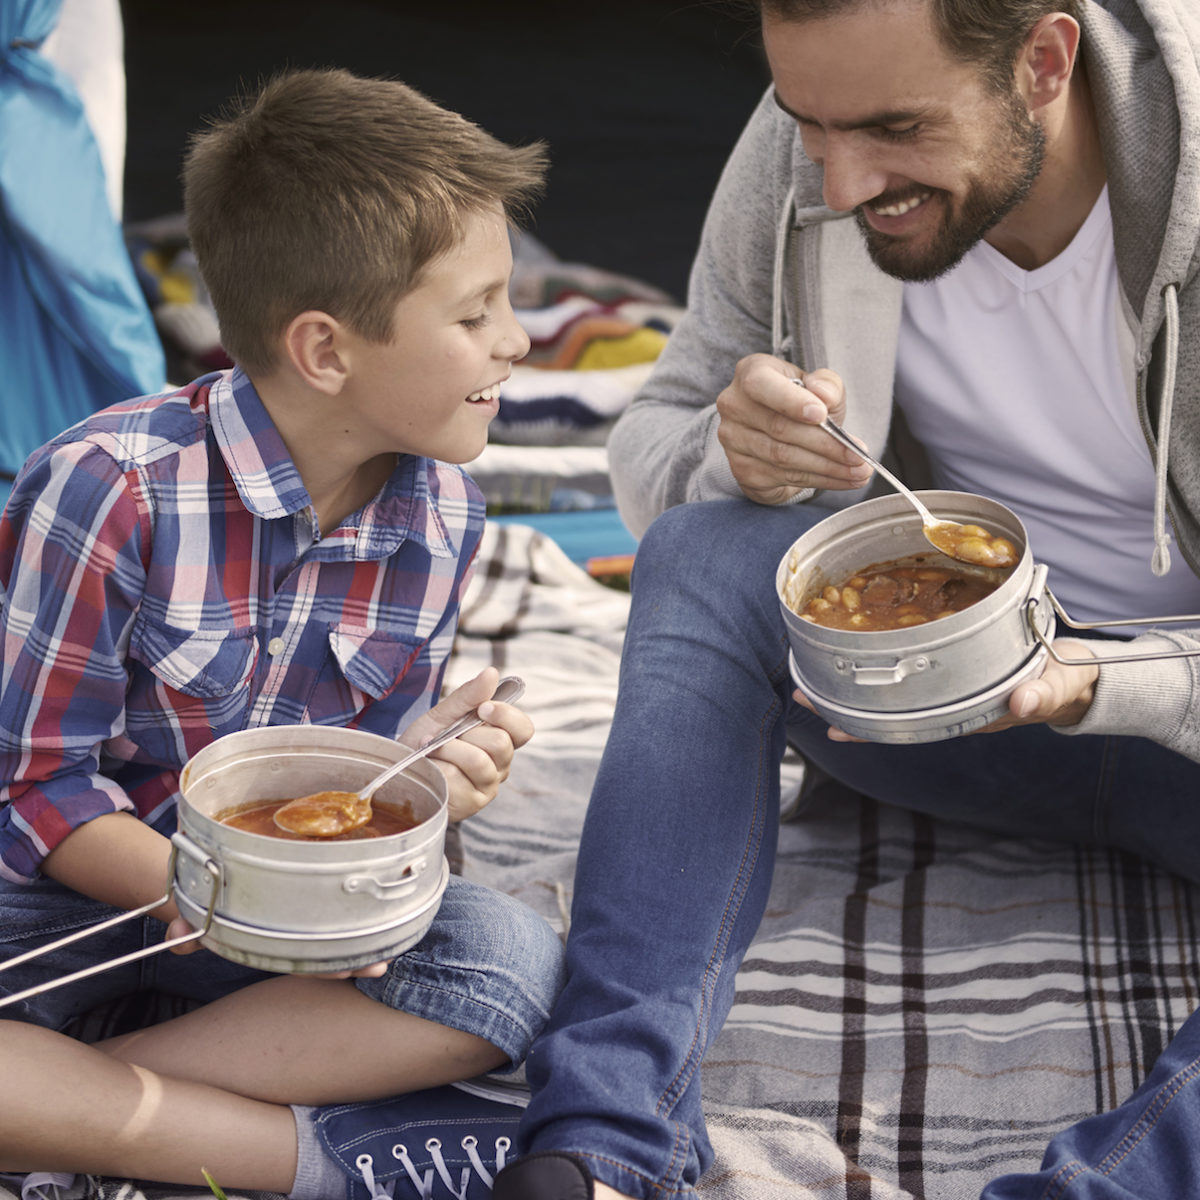 Father and son sharing a camping meal out of mess kit tins on a picnic blanket in front of a tent.